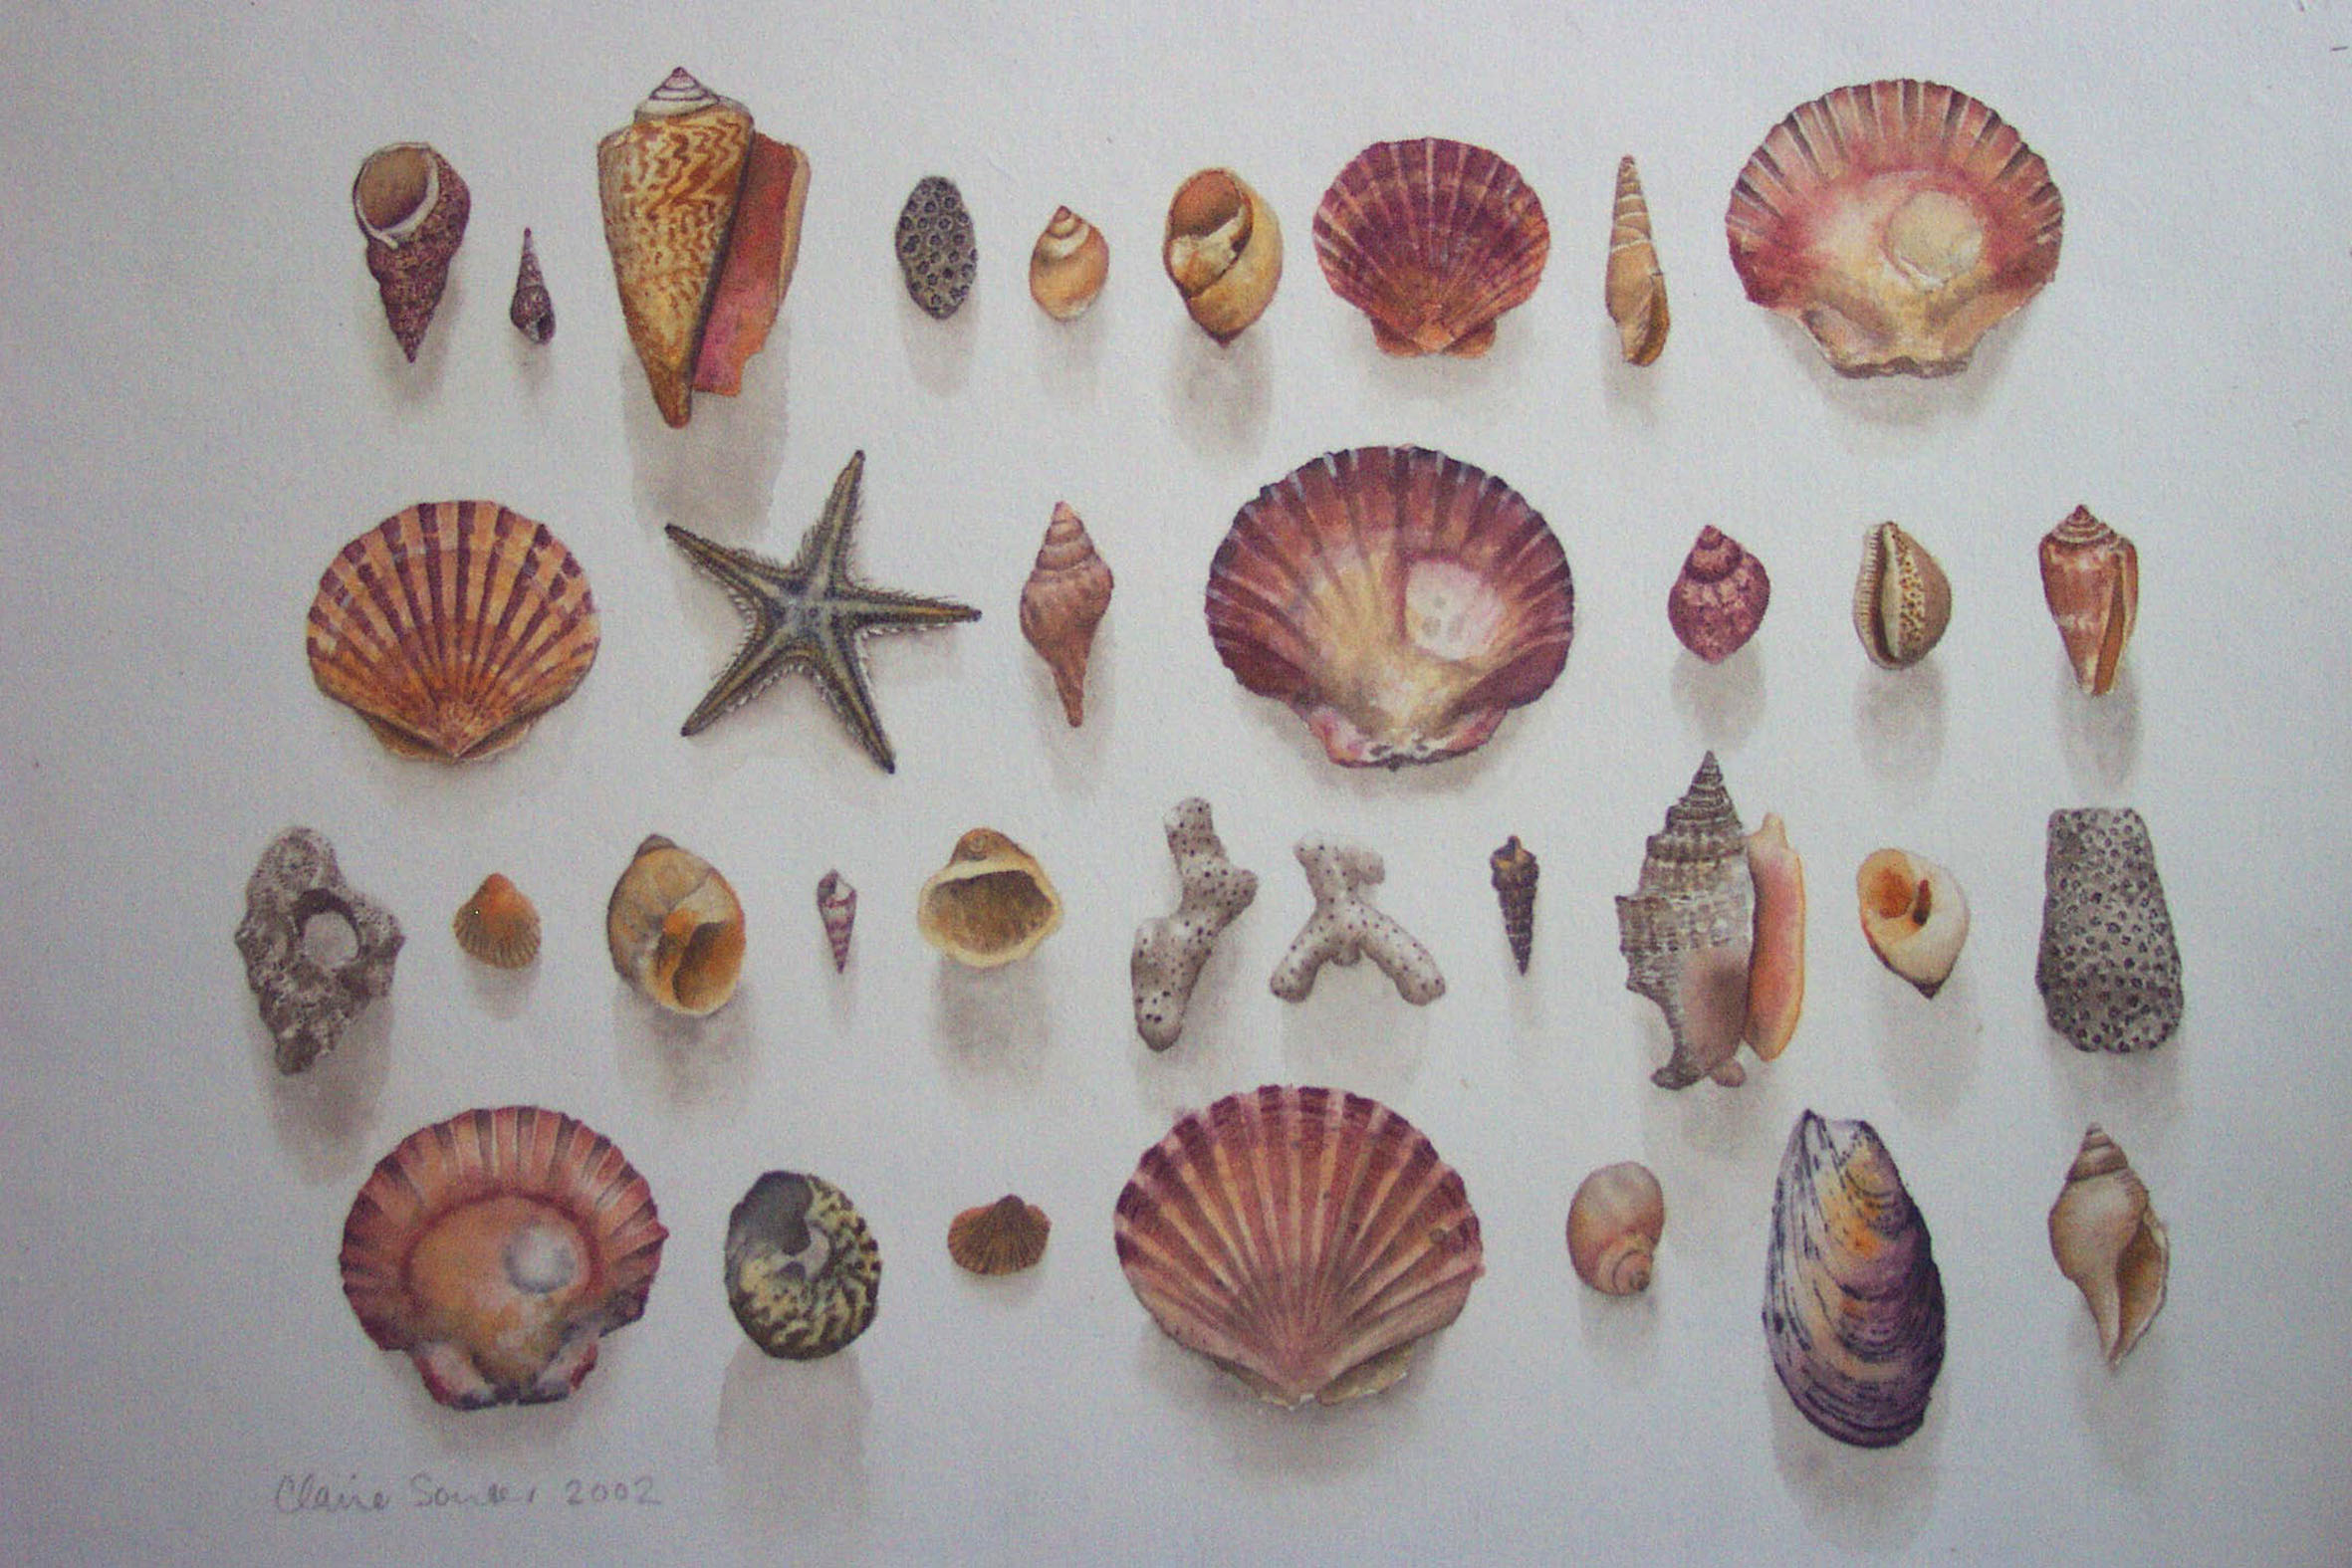 Anne's shells